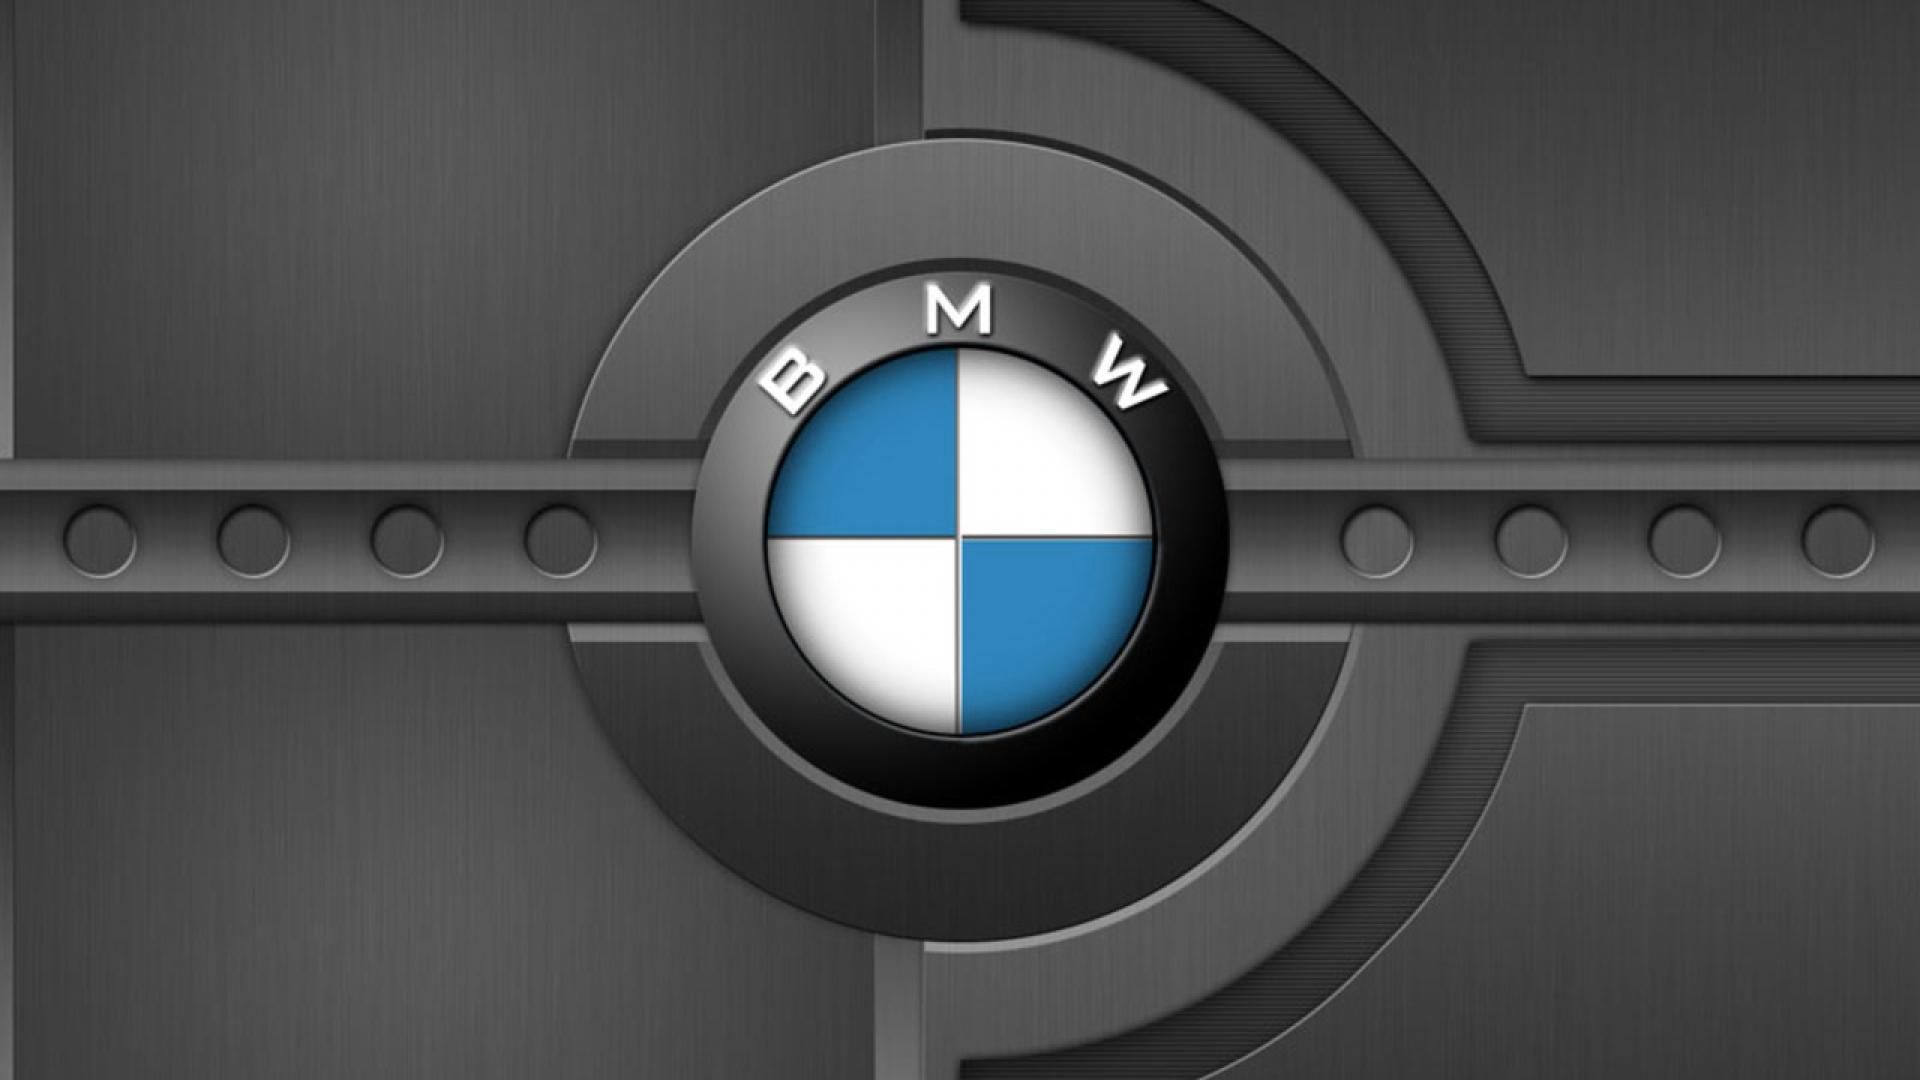 Bmw Wallpaper Iphone X Bmw Logo Wallpapers Pictures Images